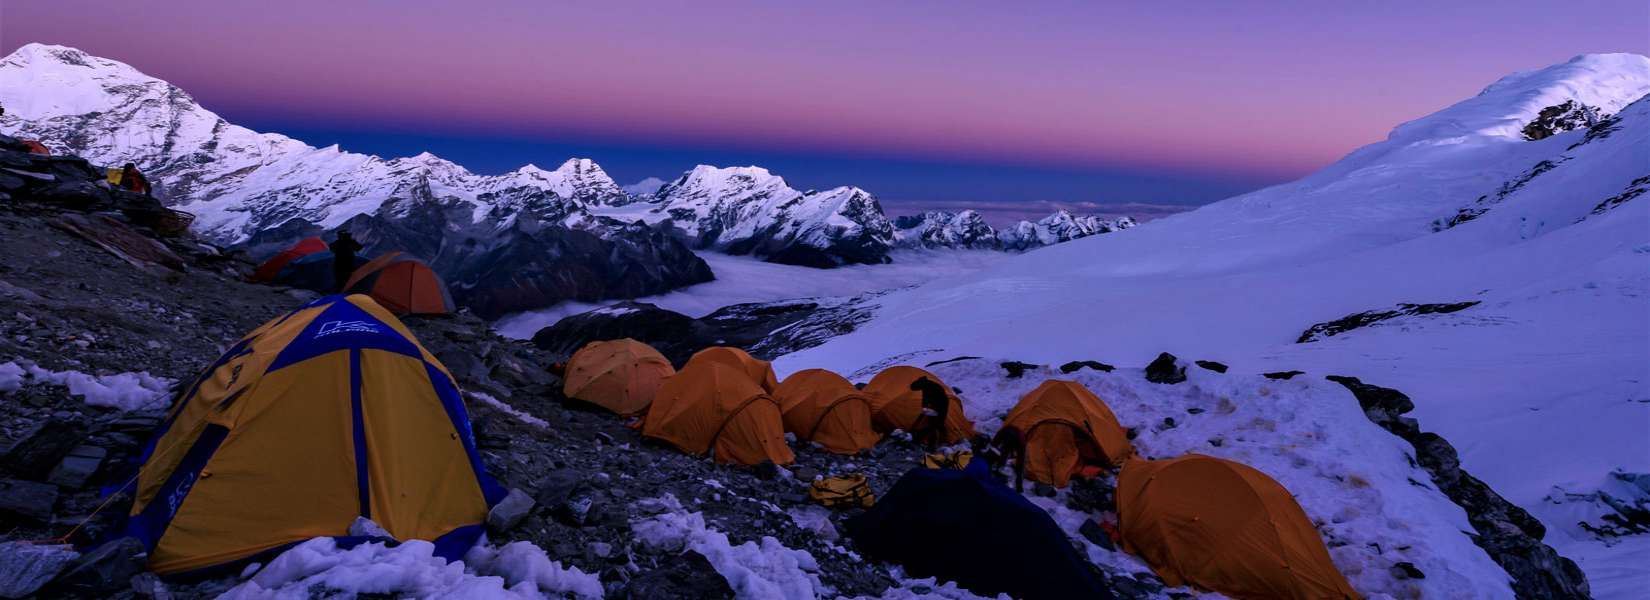 camping at the high camp of Mera Peak in Nepal